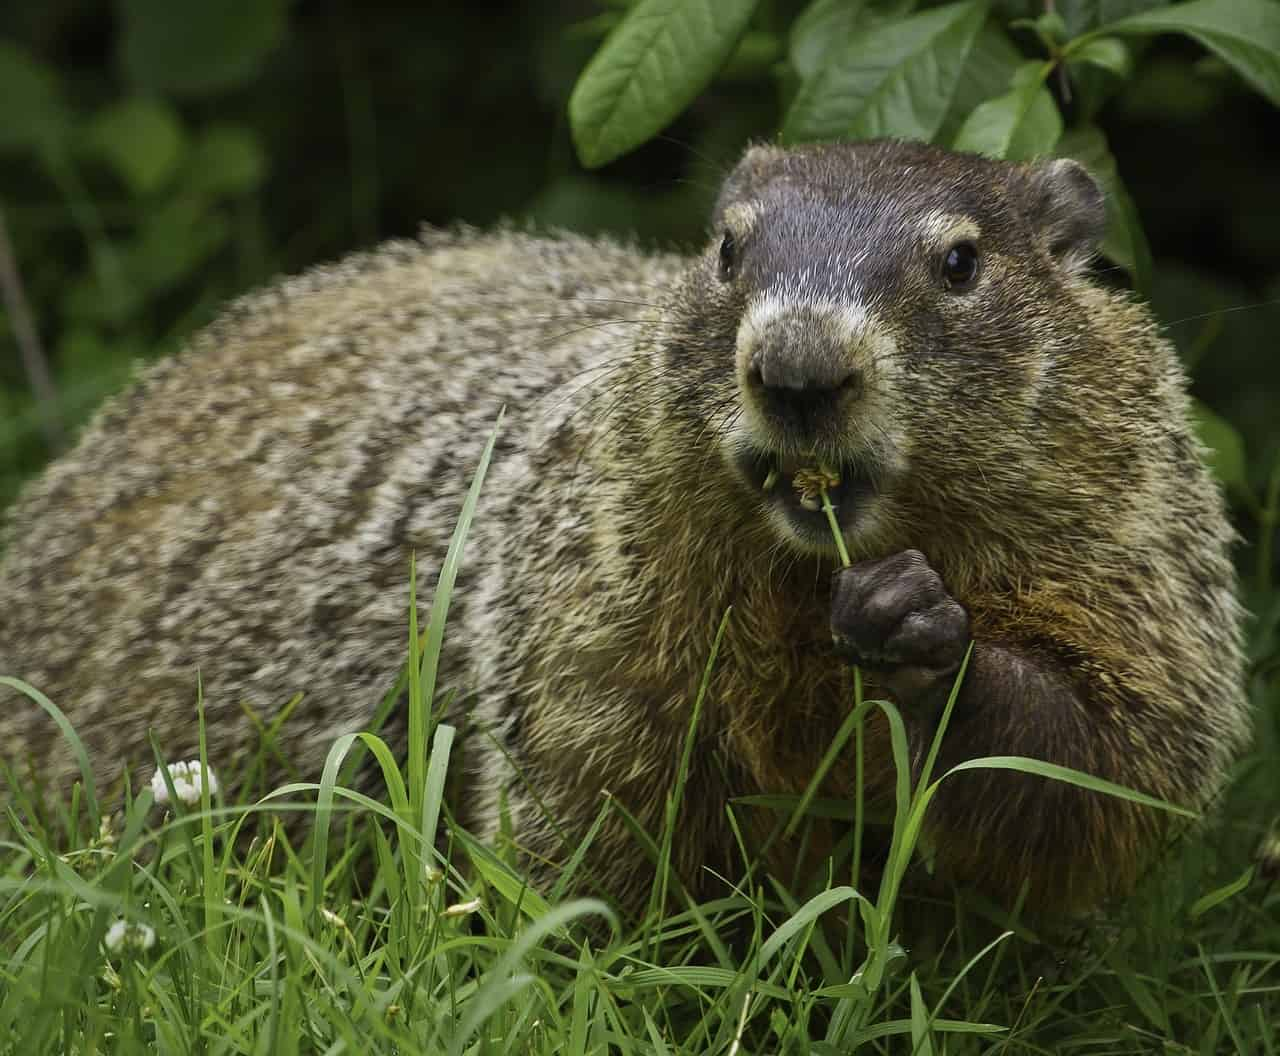 How does a Groundhog Predict the Weather